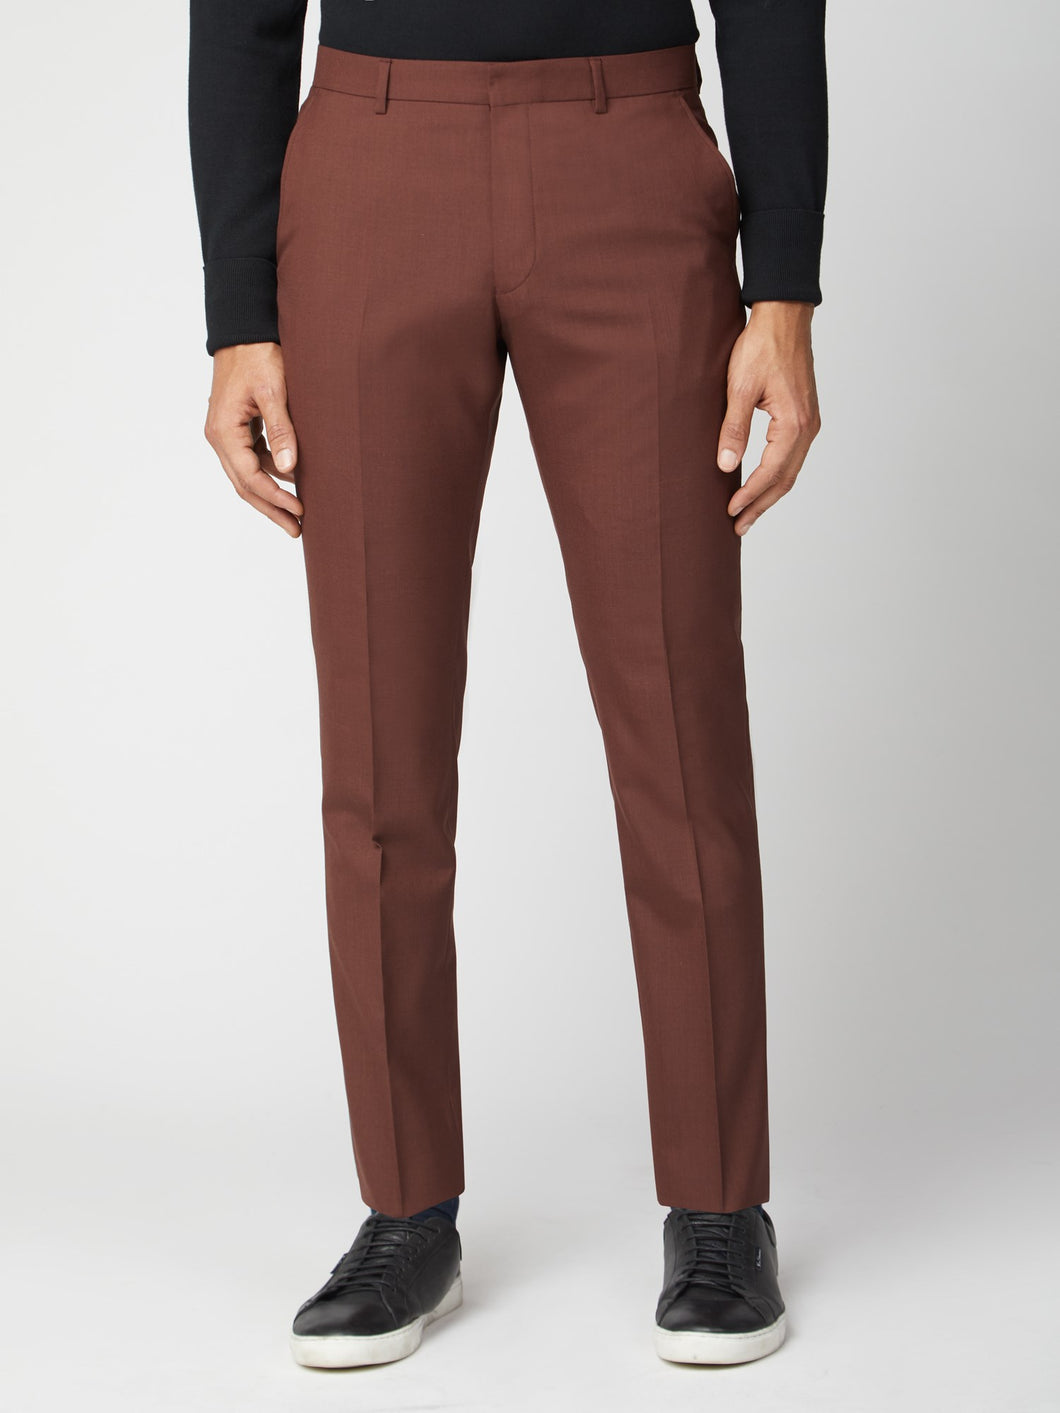 Tobacco Tonic Suit Trouser